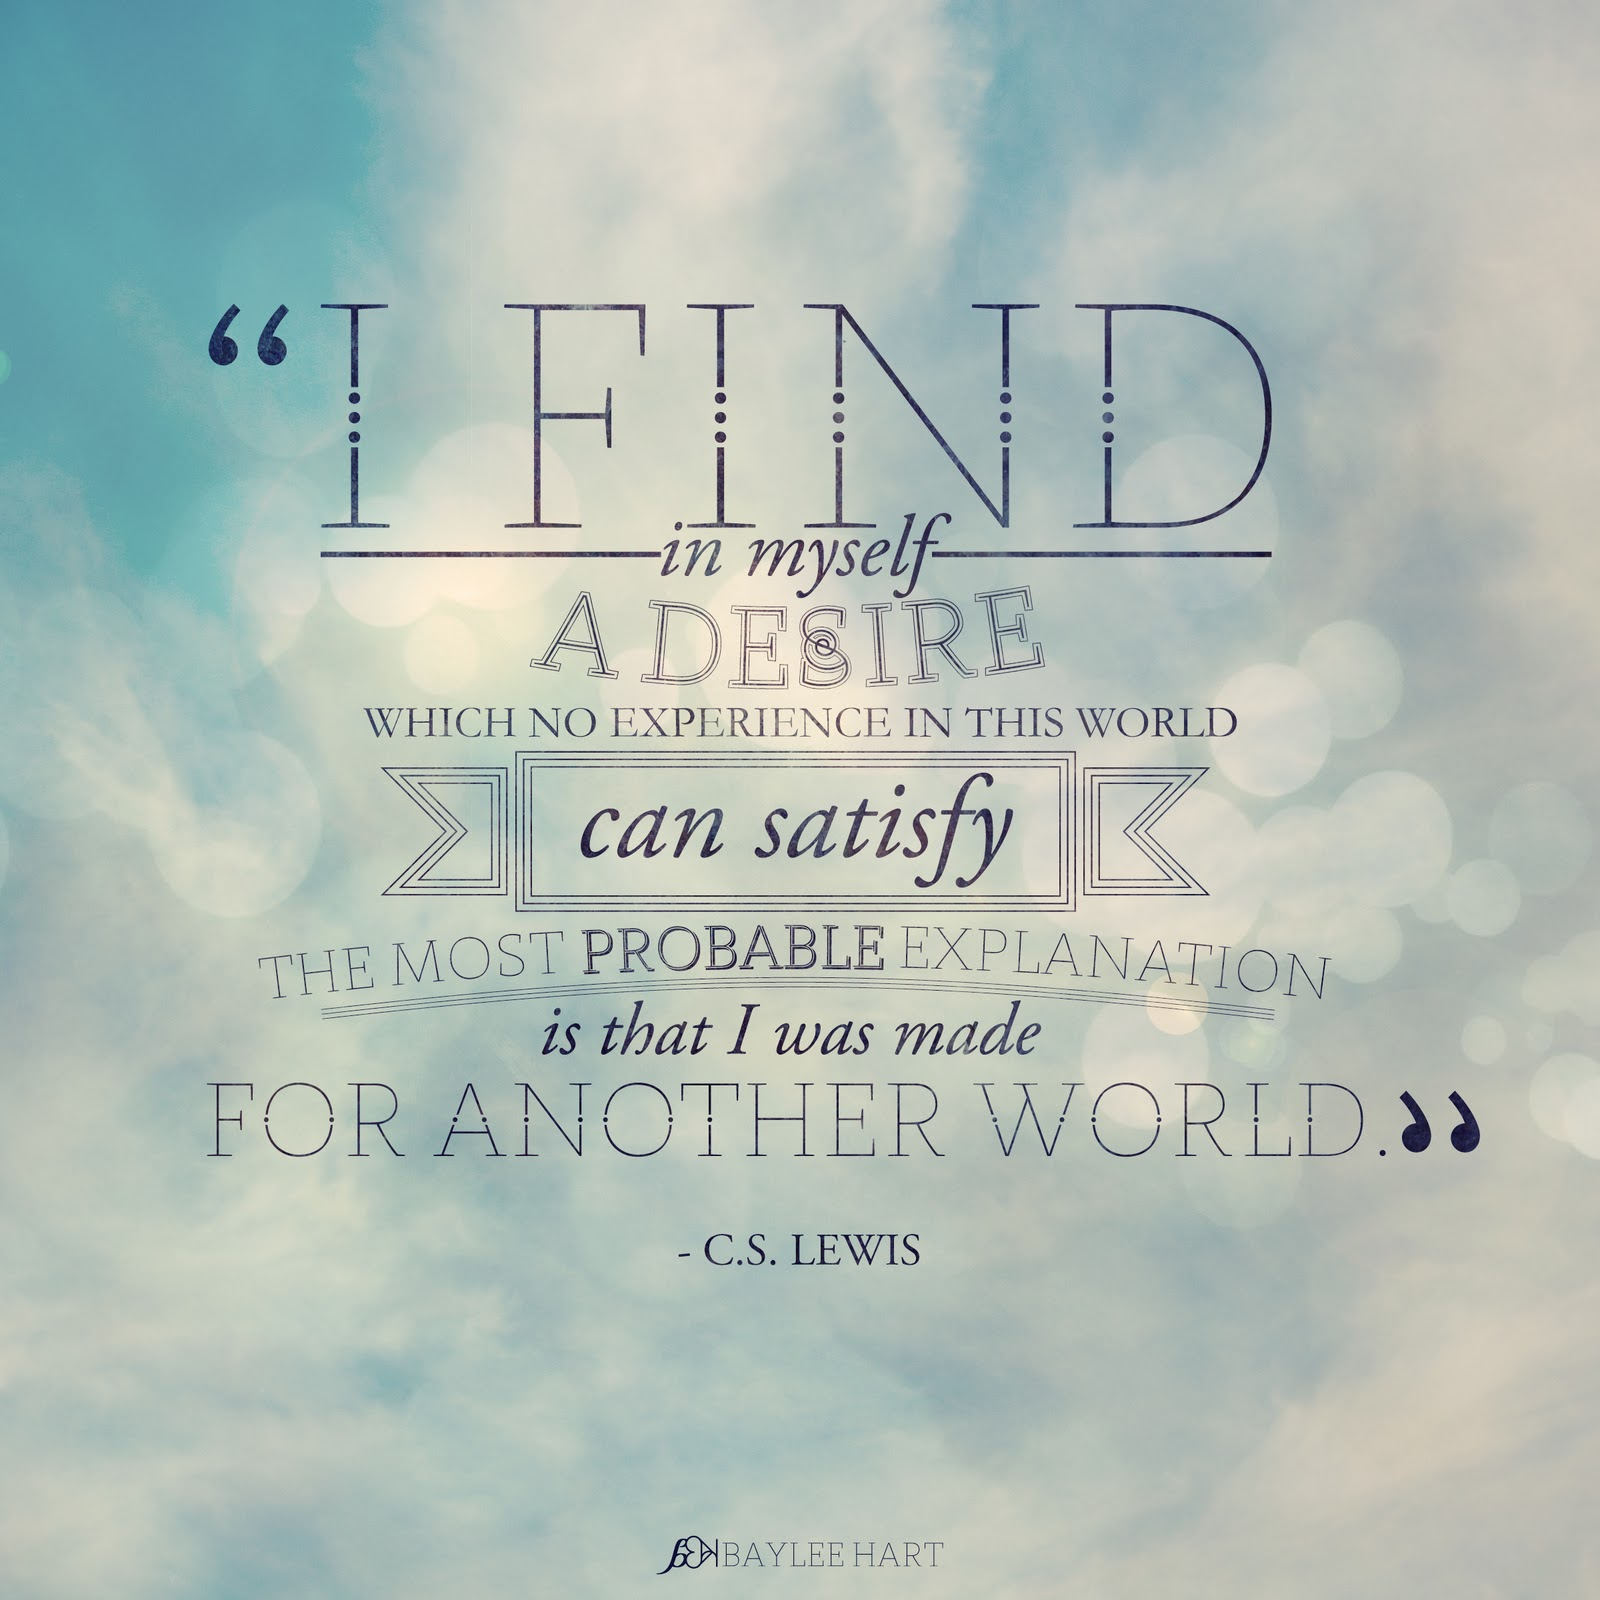 Inspirational Quotes From: Cs Lewis Inspirational Quotes. QuotesGram